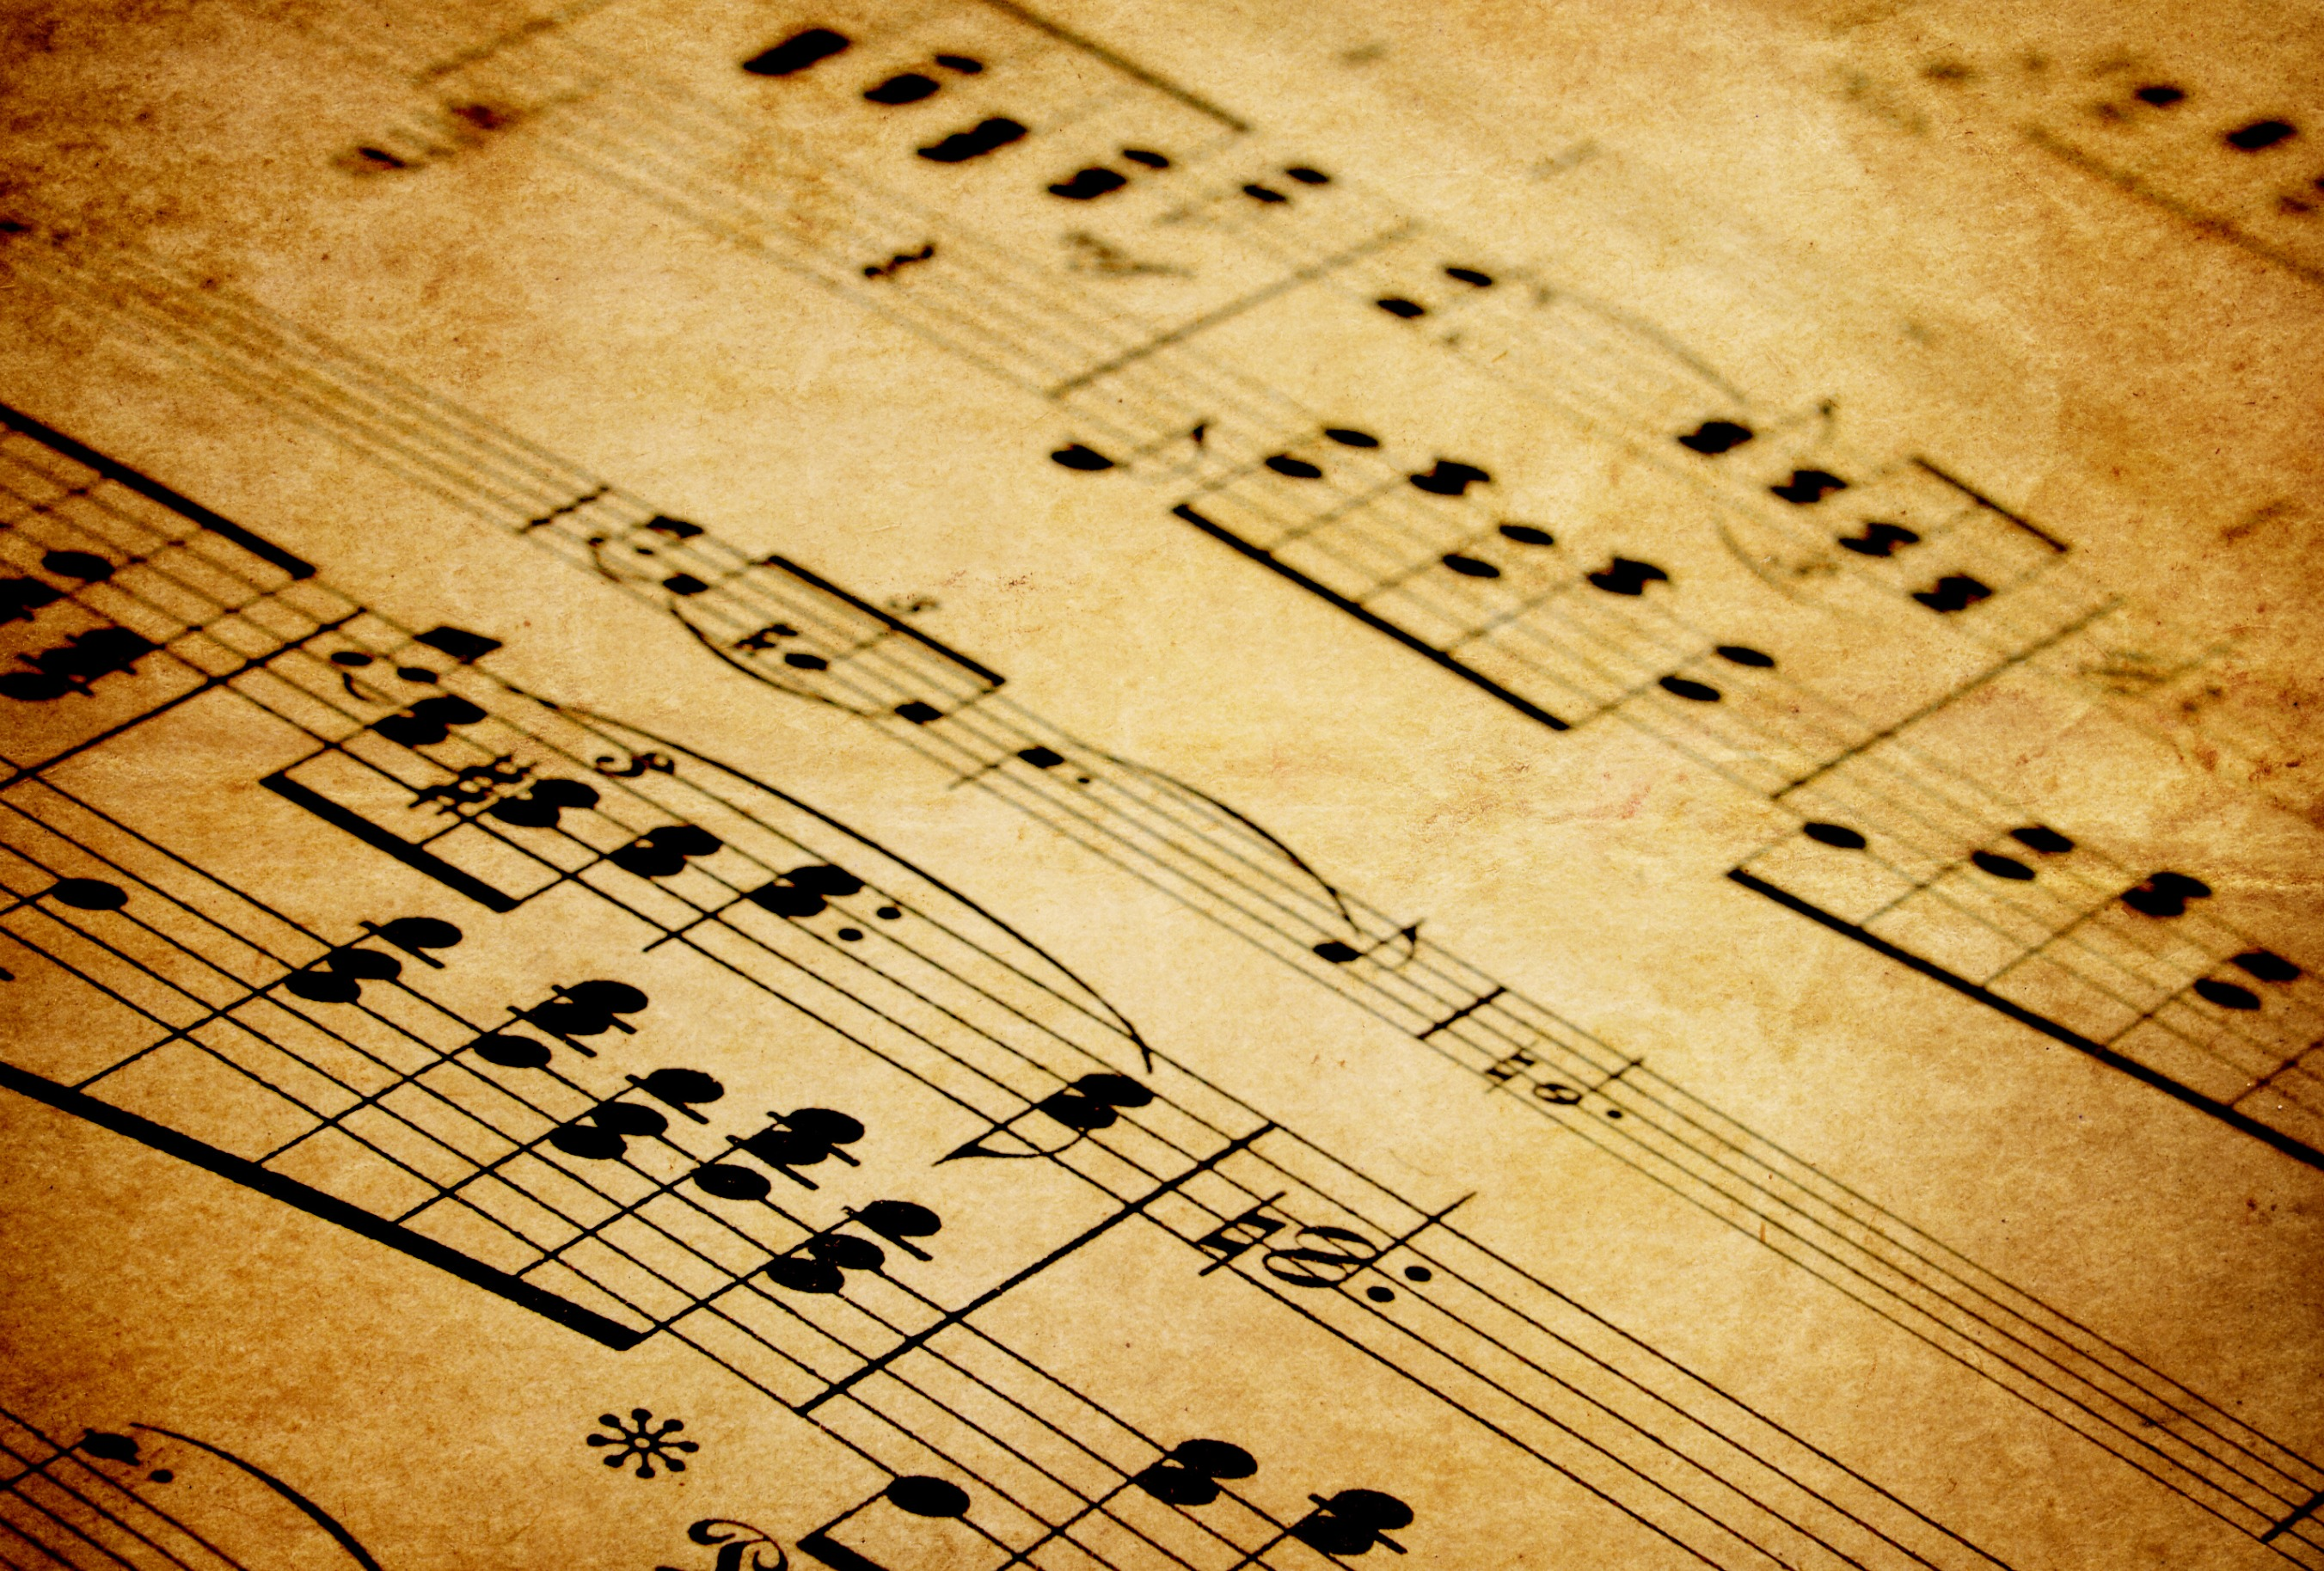 listener essay wamc picture of musical notes classical music